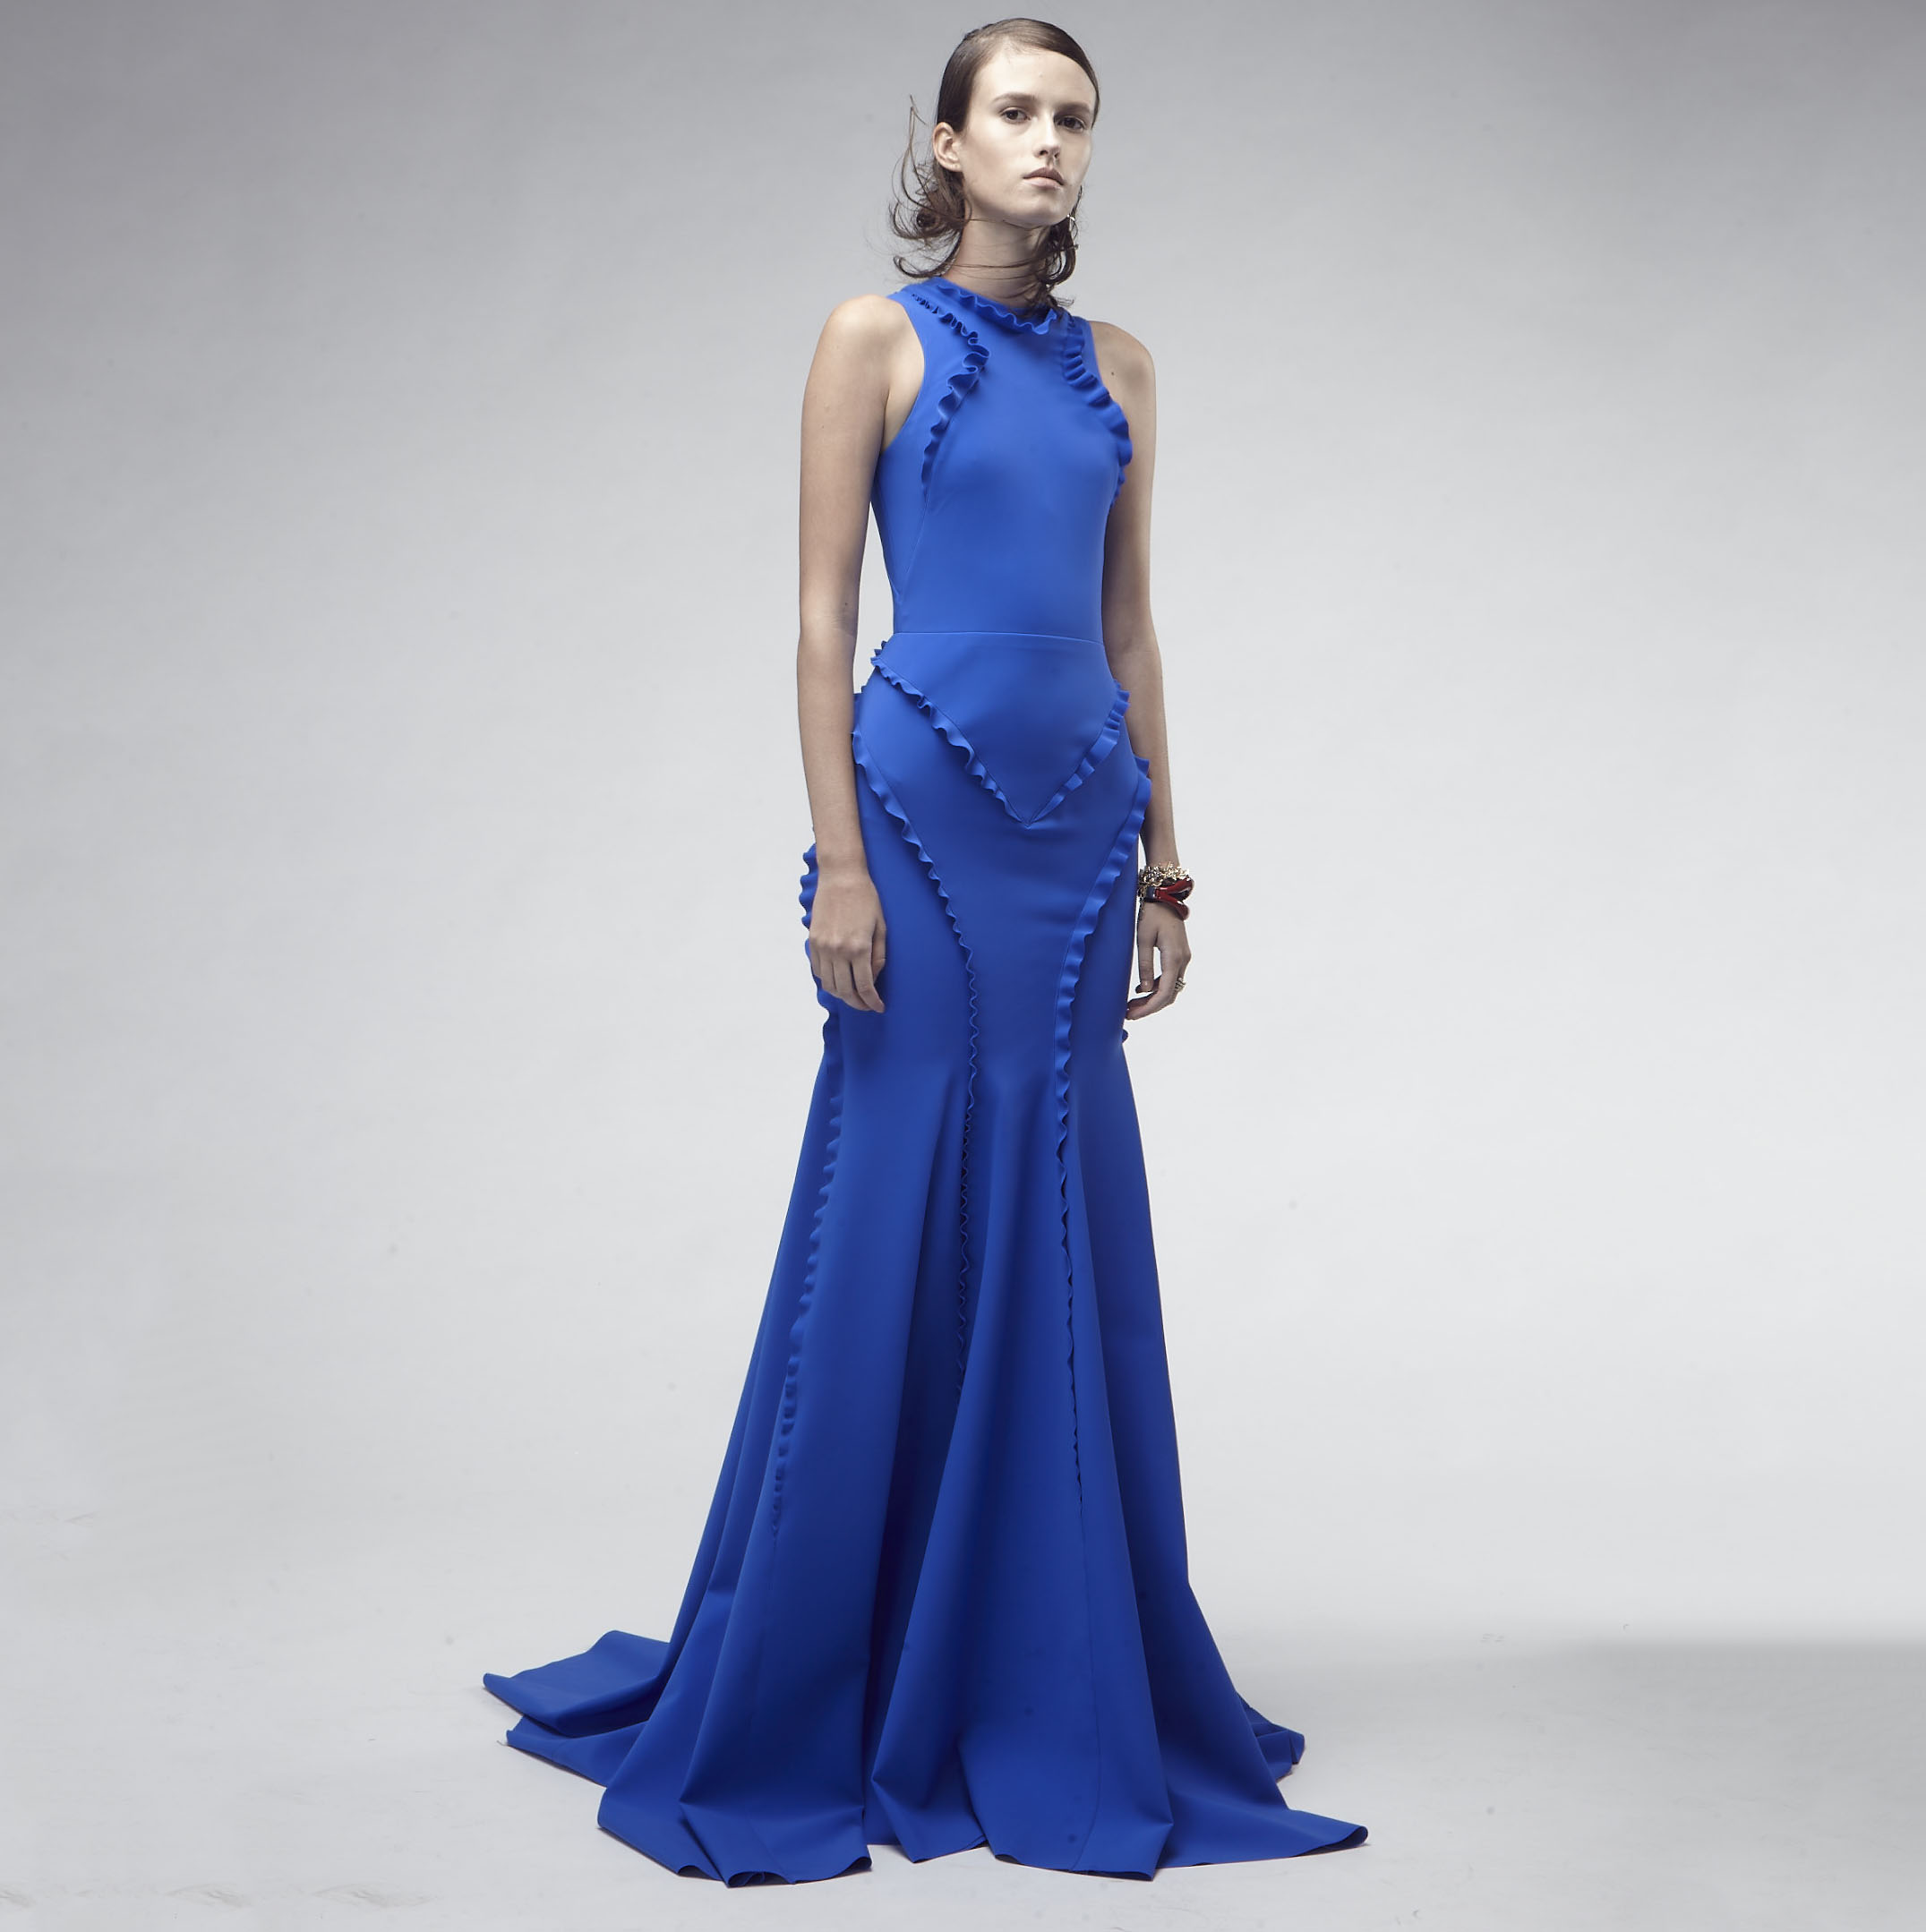 Evening Gowns & Formal Dresses by Designers - Shop Now